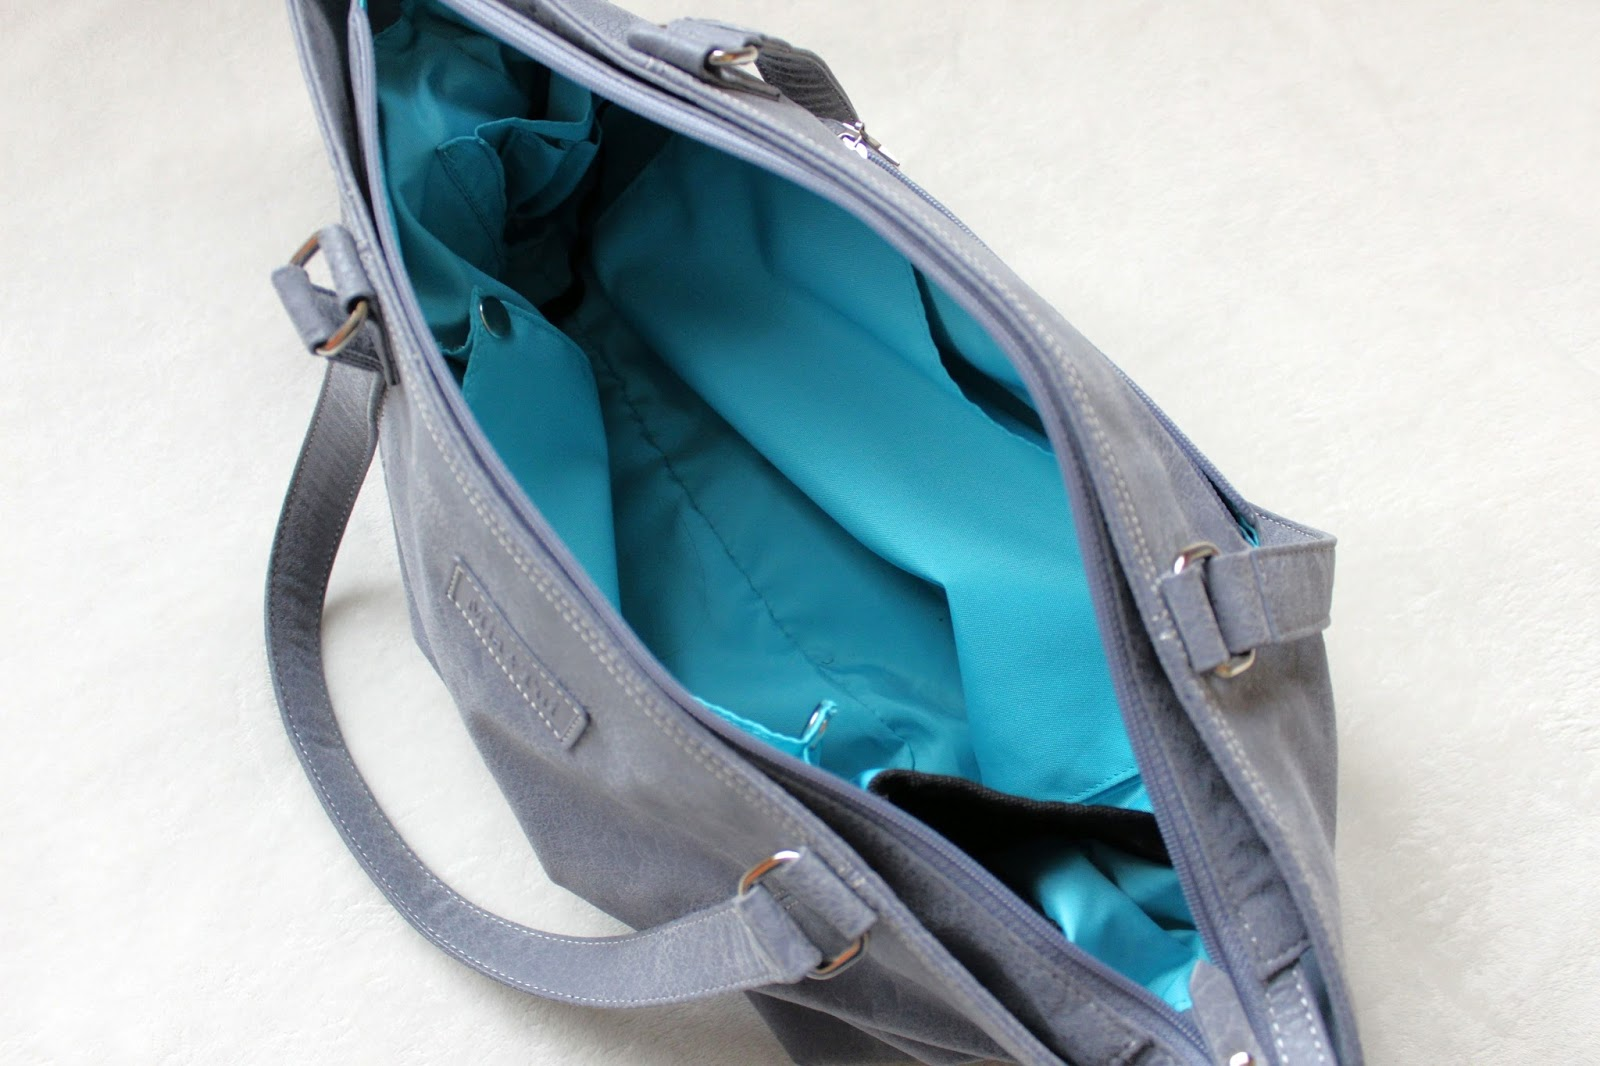 Large grey handbag open revealing a turquoise interior, some pockets are visible.